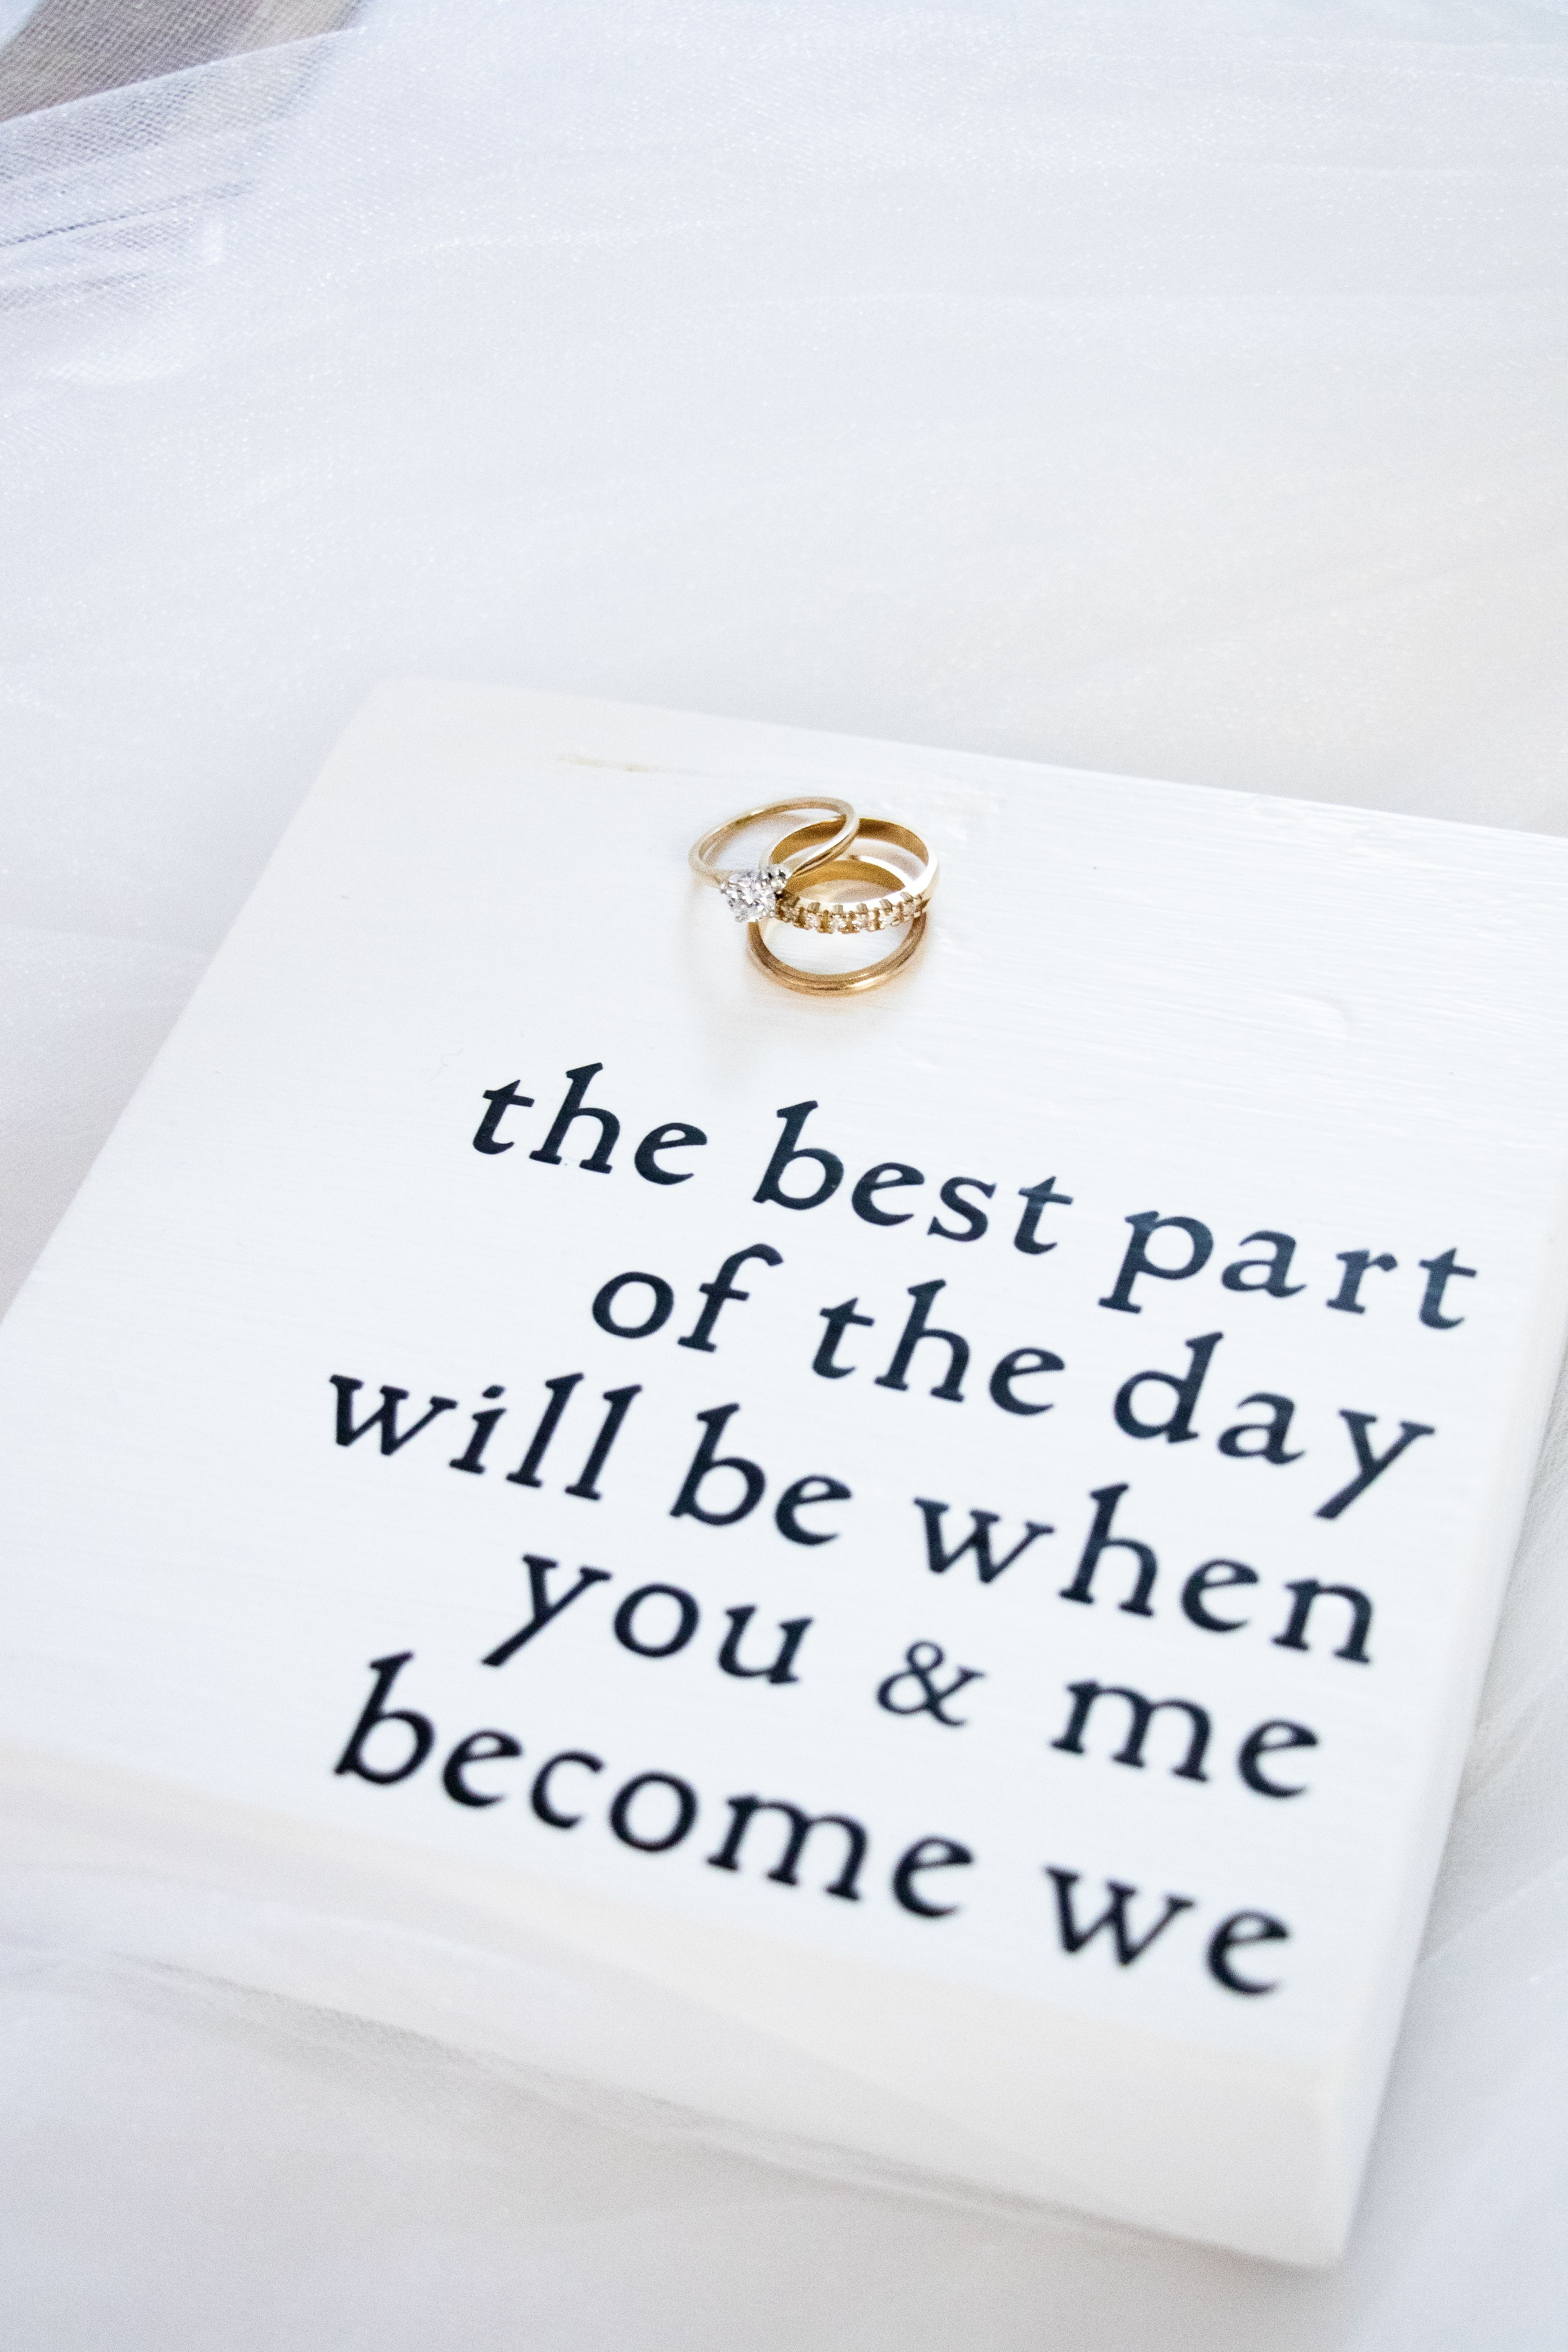 Wedding Sign: the Best Part of the day will be when you and me become we.